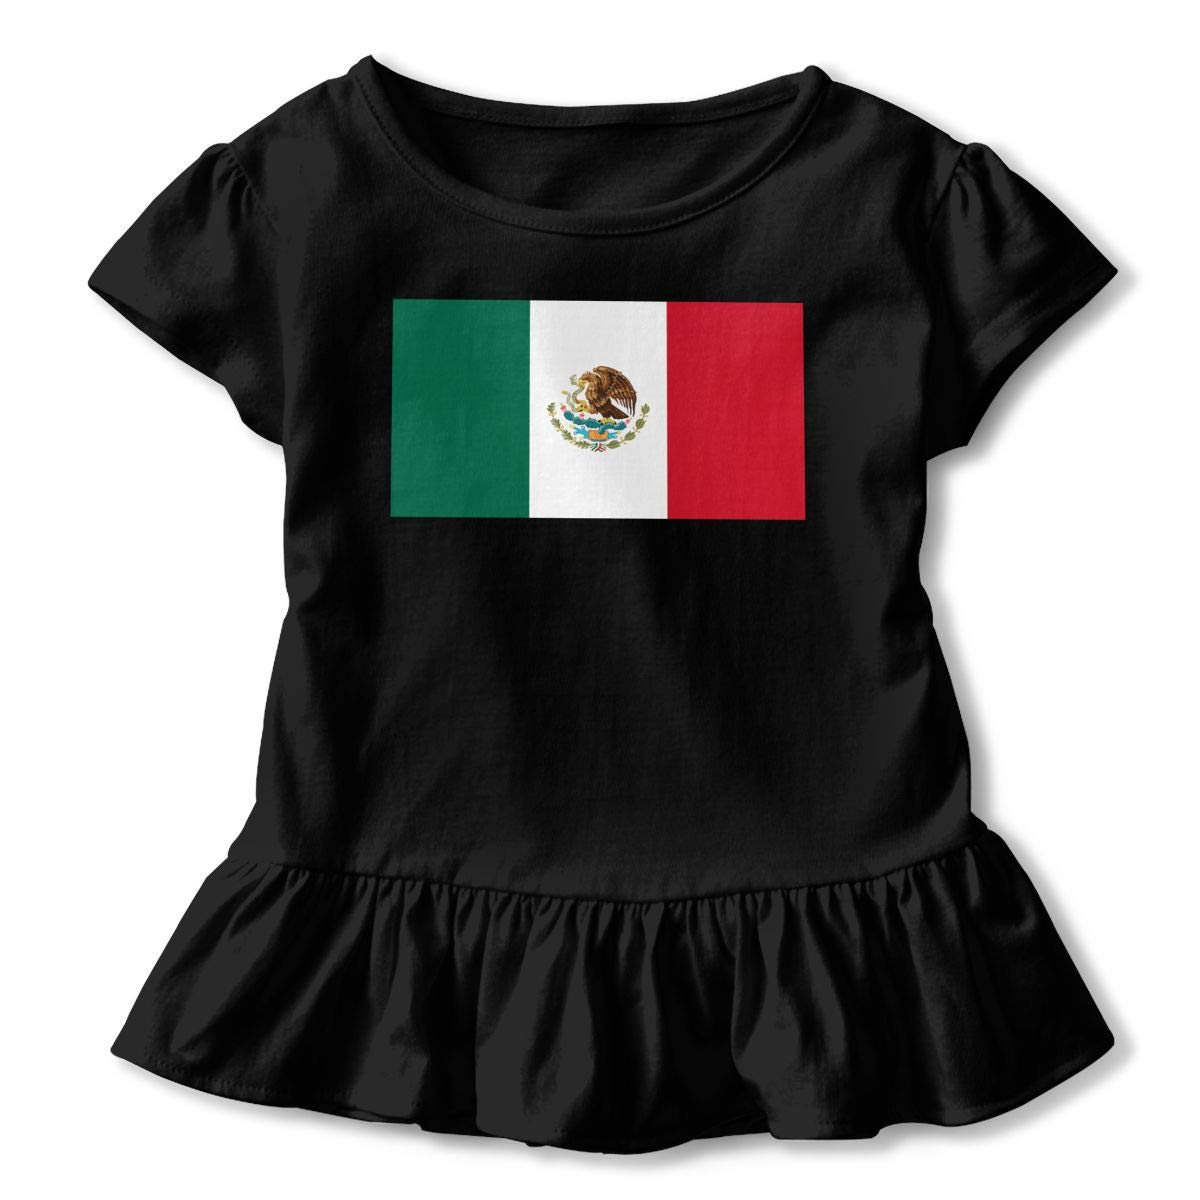 Flag of Mexico Baby Girls Short Sleeve Ruffles T-Shirt Tops 2-Pack Cotton Tee